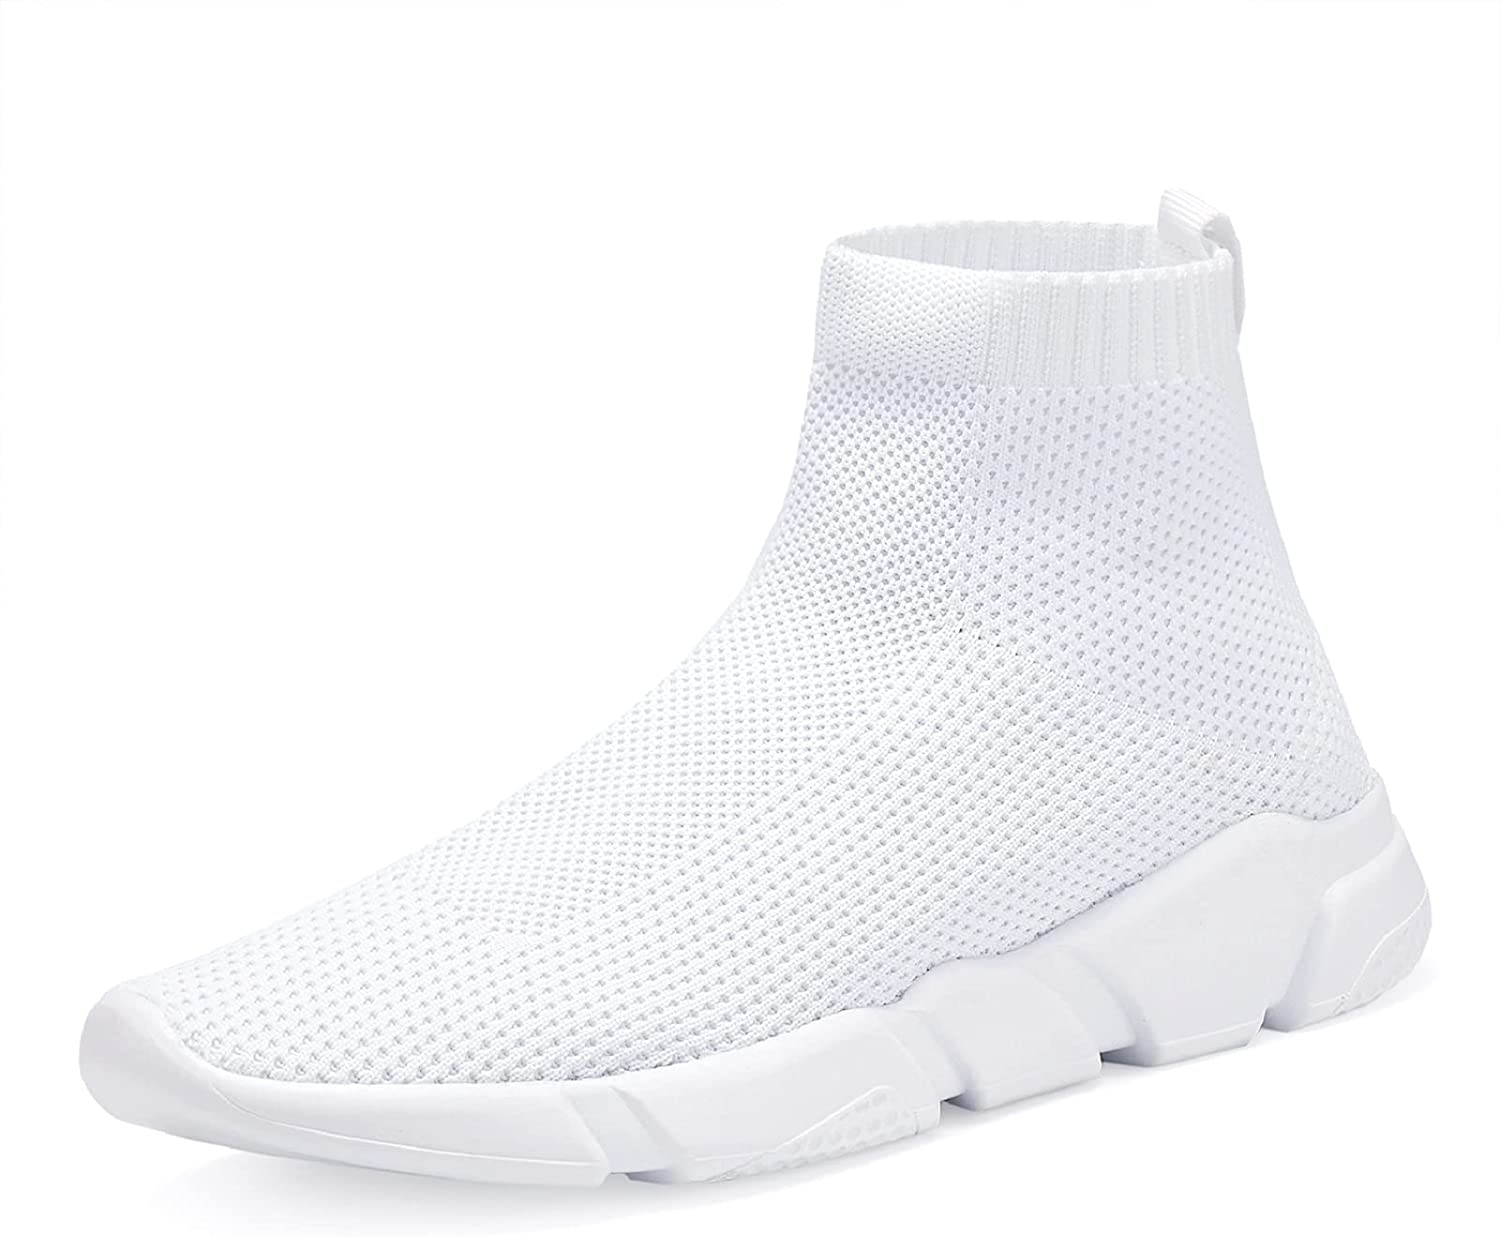 WXQ Men's Fashion Sneakers Miami Mall - Walking Breathable Sale special price Shoe Lightweight